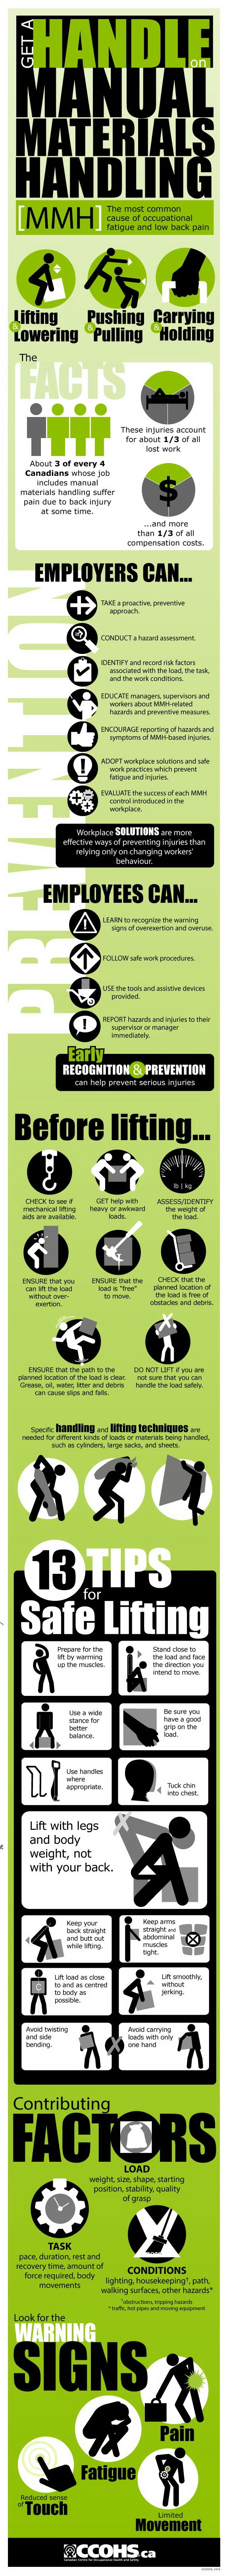 Manual materials handling (MMH) is the most common cause of occupational fatigue and low back pain. Learn prevention tips for both employers and workers, and get practical tips to lift safely, in this CCOHS infographic.